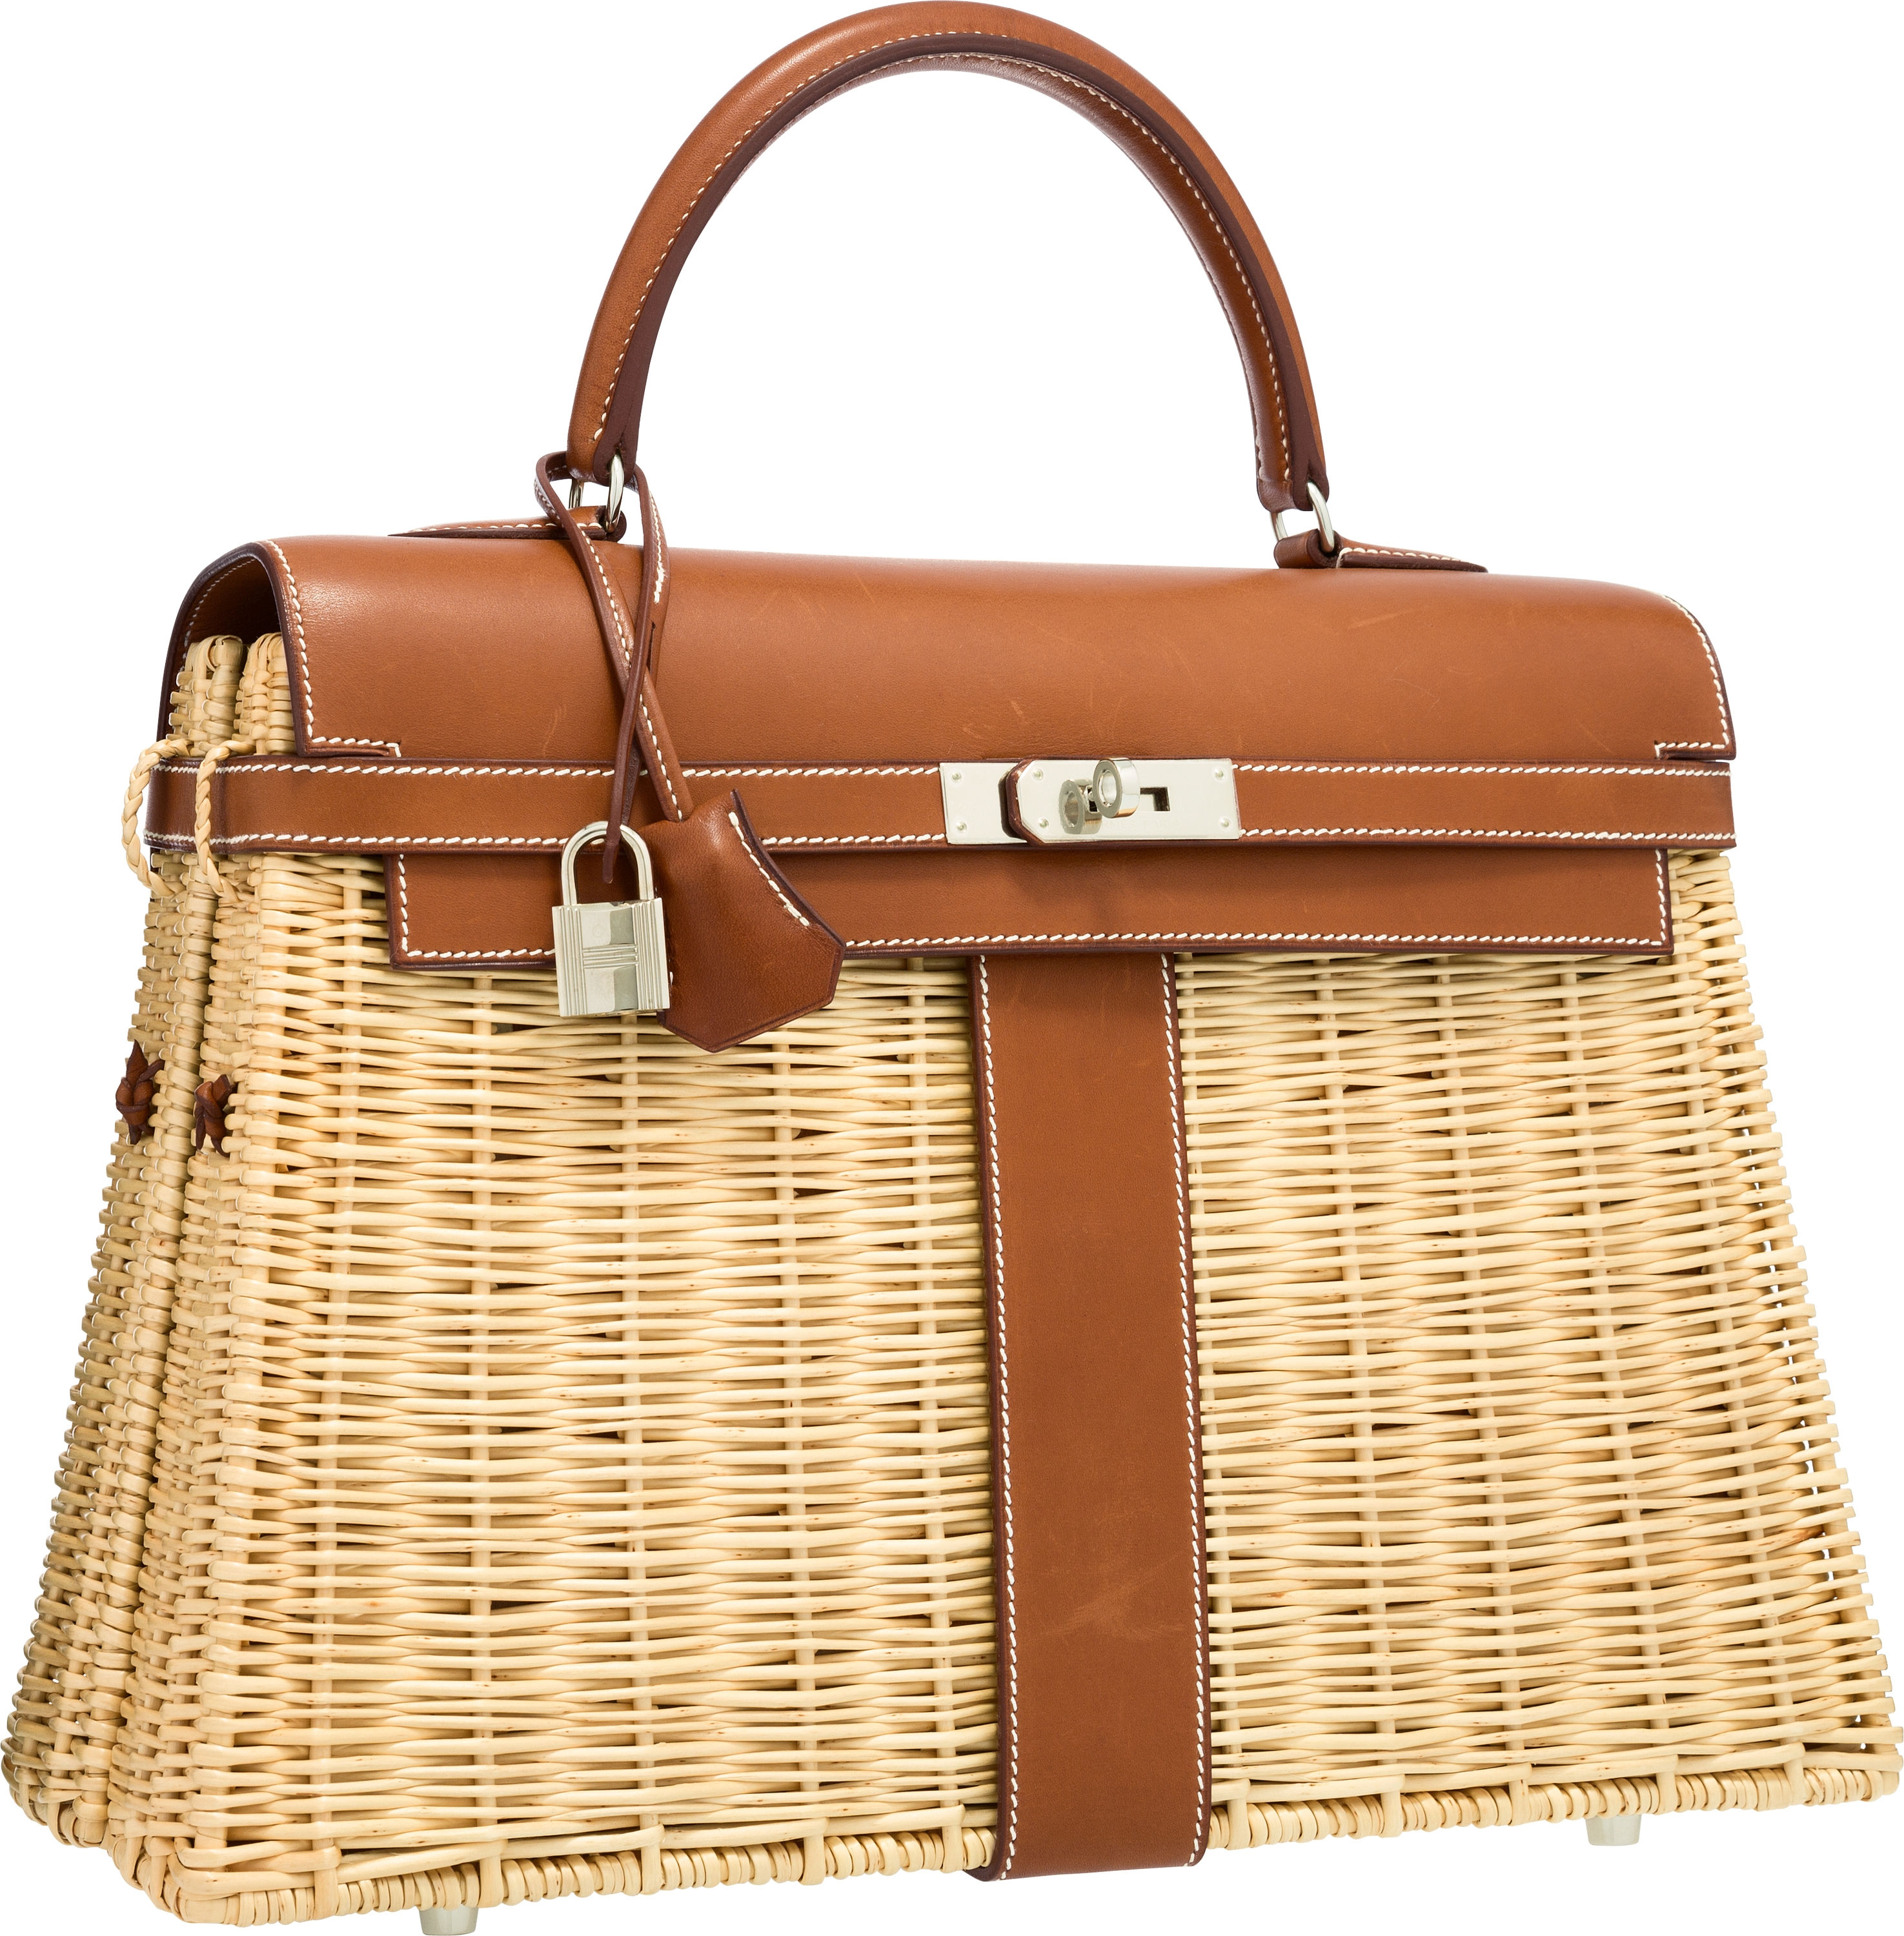 b5aab1a71381 The 35 cm Picnic Kelly in leather and wicker with Palladium hardware was  part of a